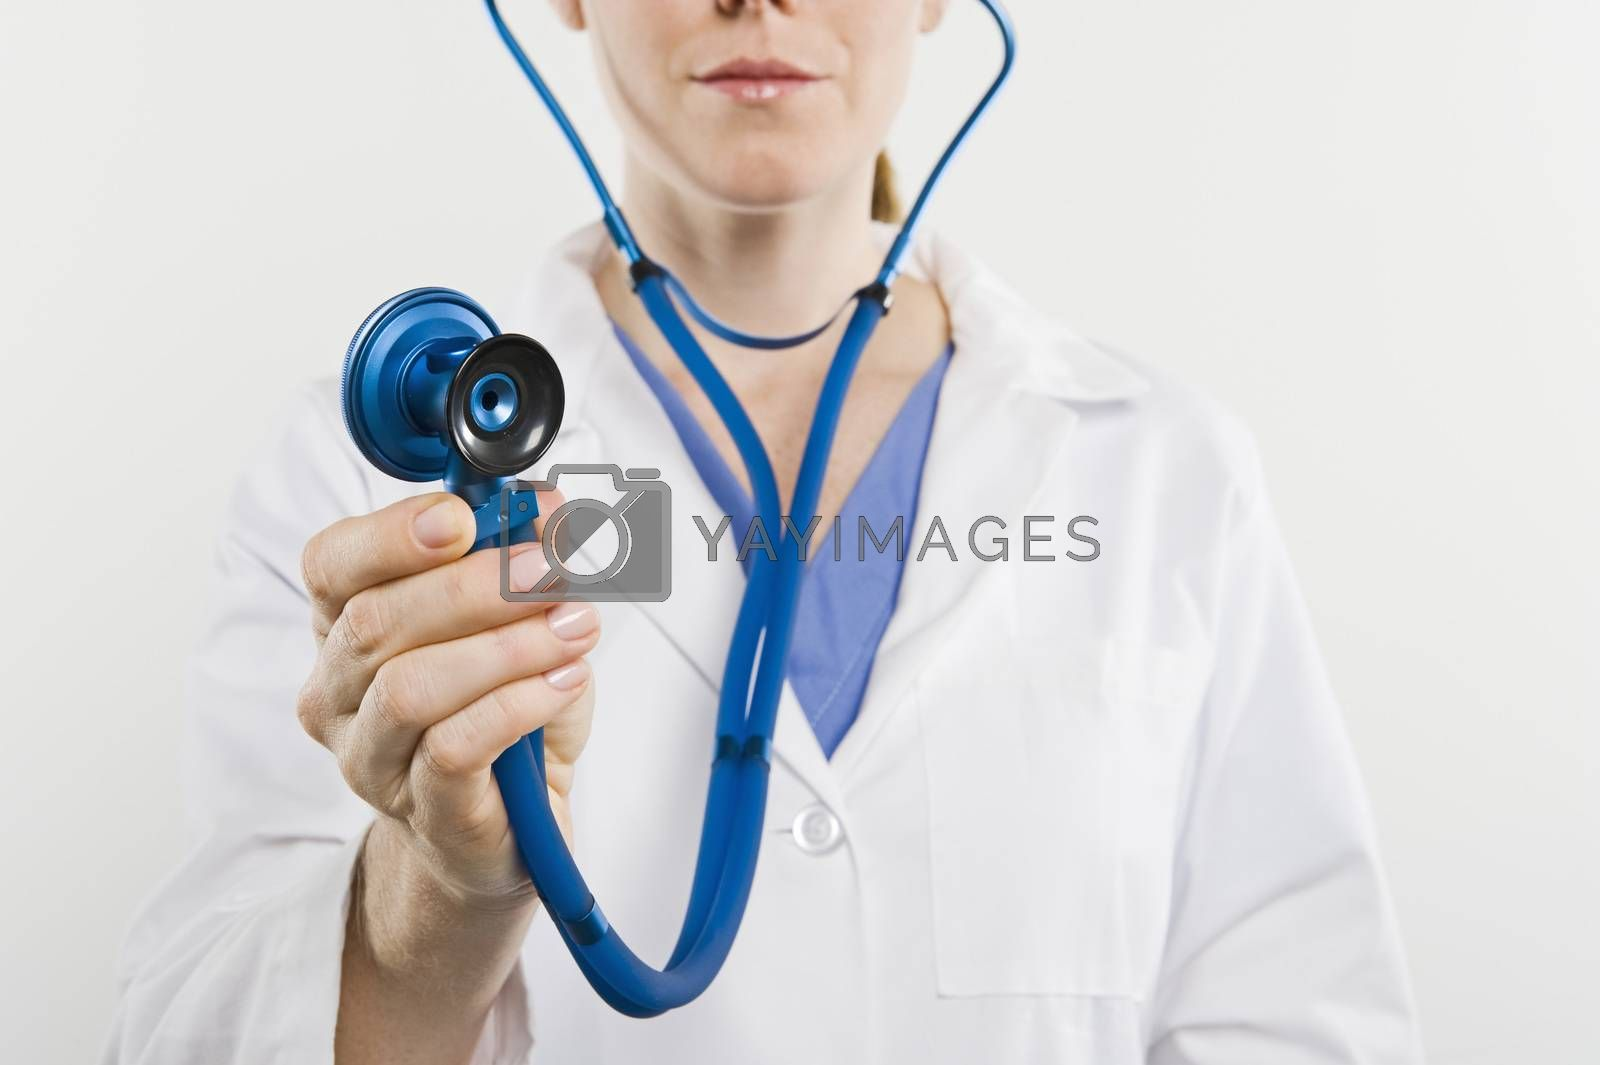 Midsection Of A Female Doctor Holding Stethoscope Around Neck Isolated Over White Background Royalty Free Stock Image Stock Photos Royalty Free Images Vectors Footage Yayimages